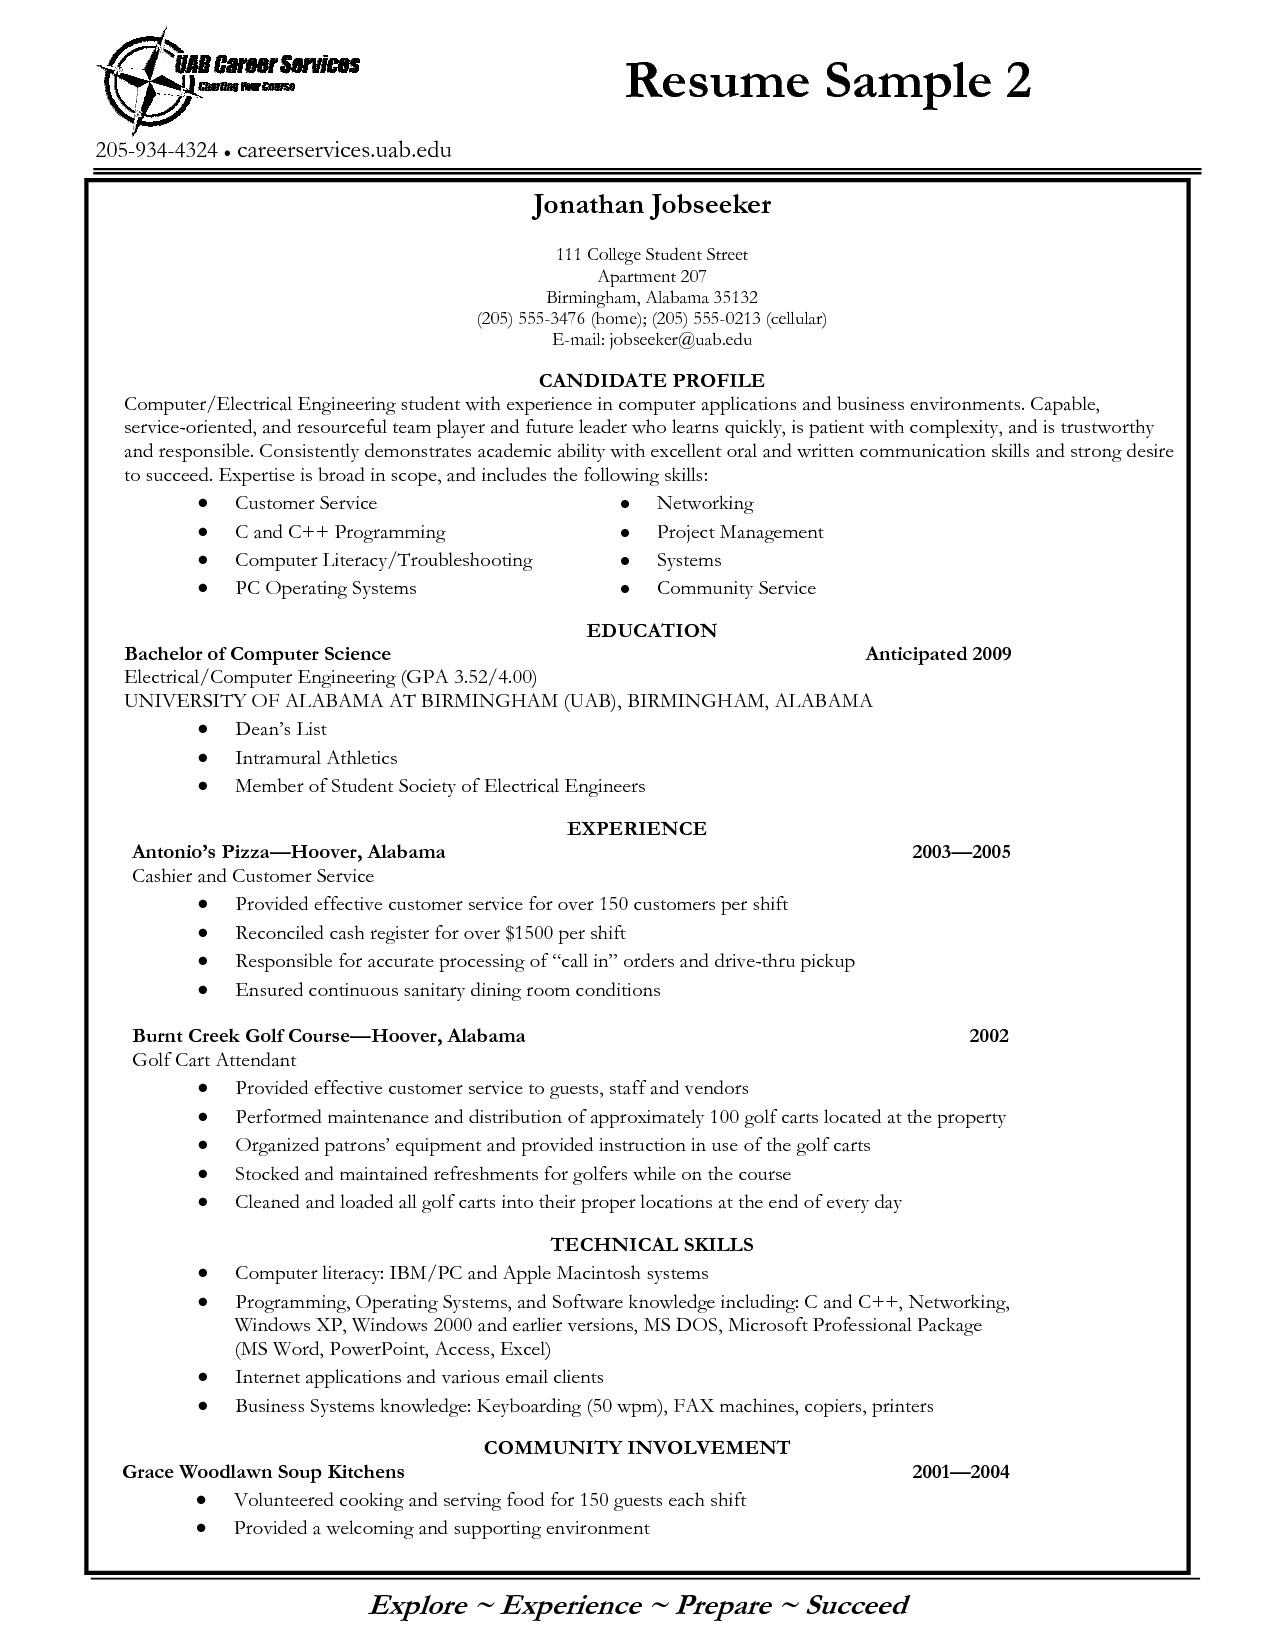 Resume Template For College Student Tags College Graduate Resume No Experience College Graduate Resume